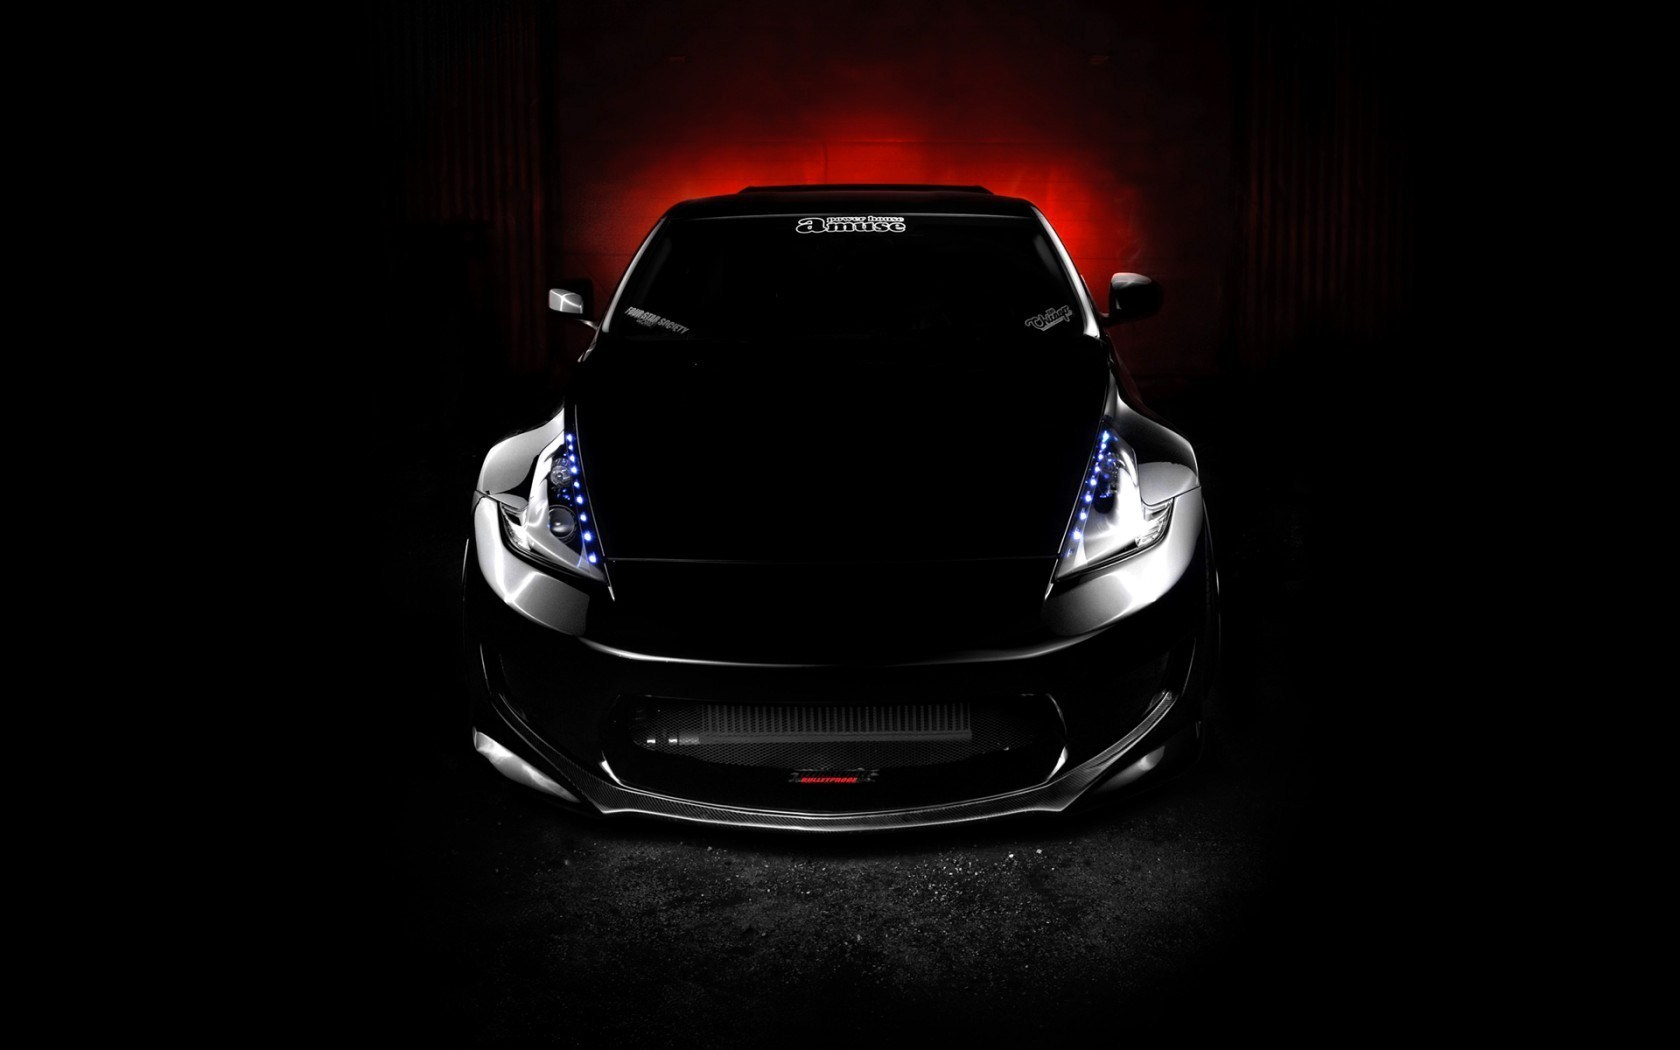 370z Wallpapers 1680x1050